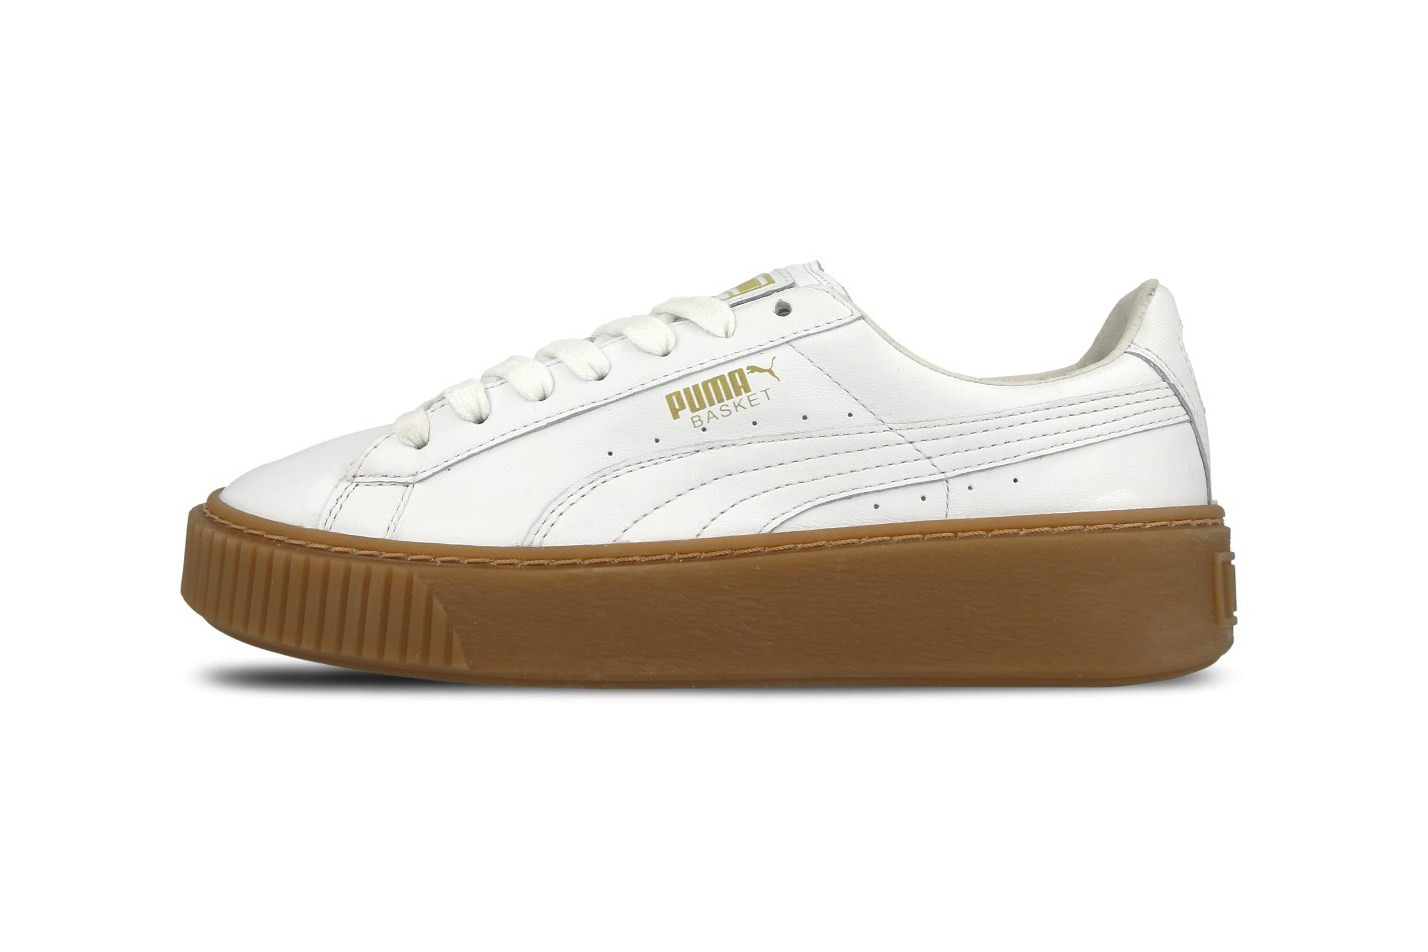 puma-basket-platform-core-gum-sole-1